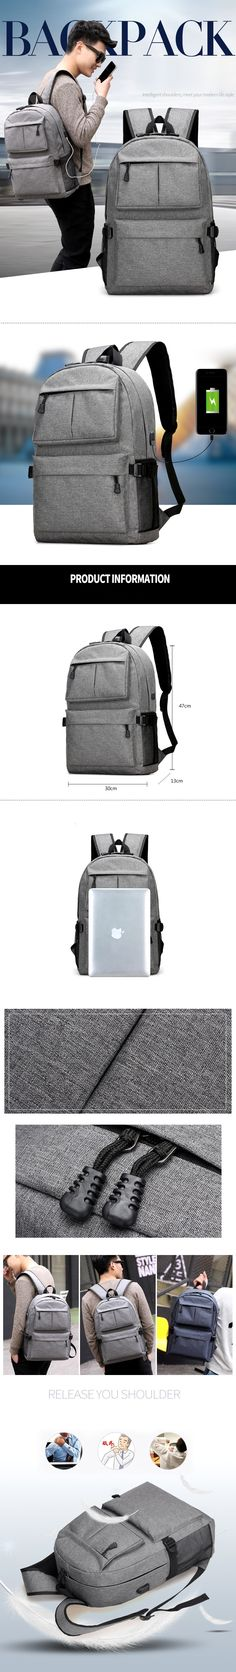 Unisex Design Backpack Book Bags for School Backpack Casual #Rucksack #Daypack #Oxford #Canvas #Laptop #Fashion Man #Backpacks